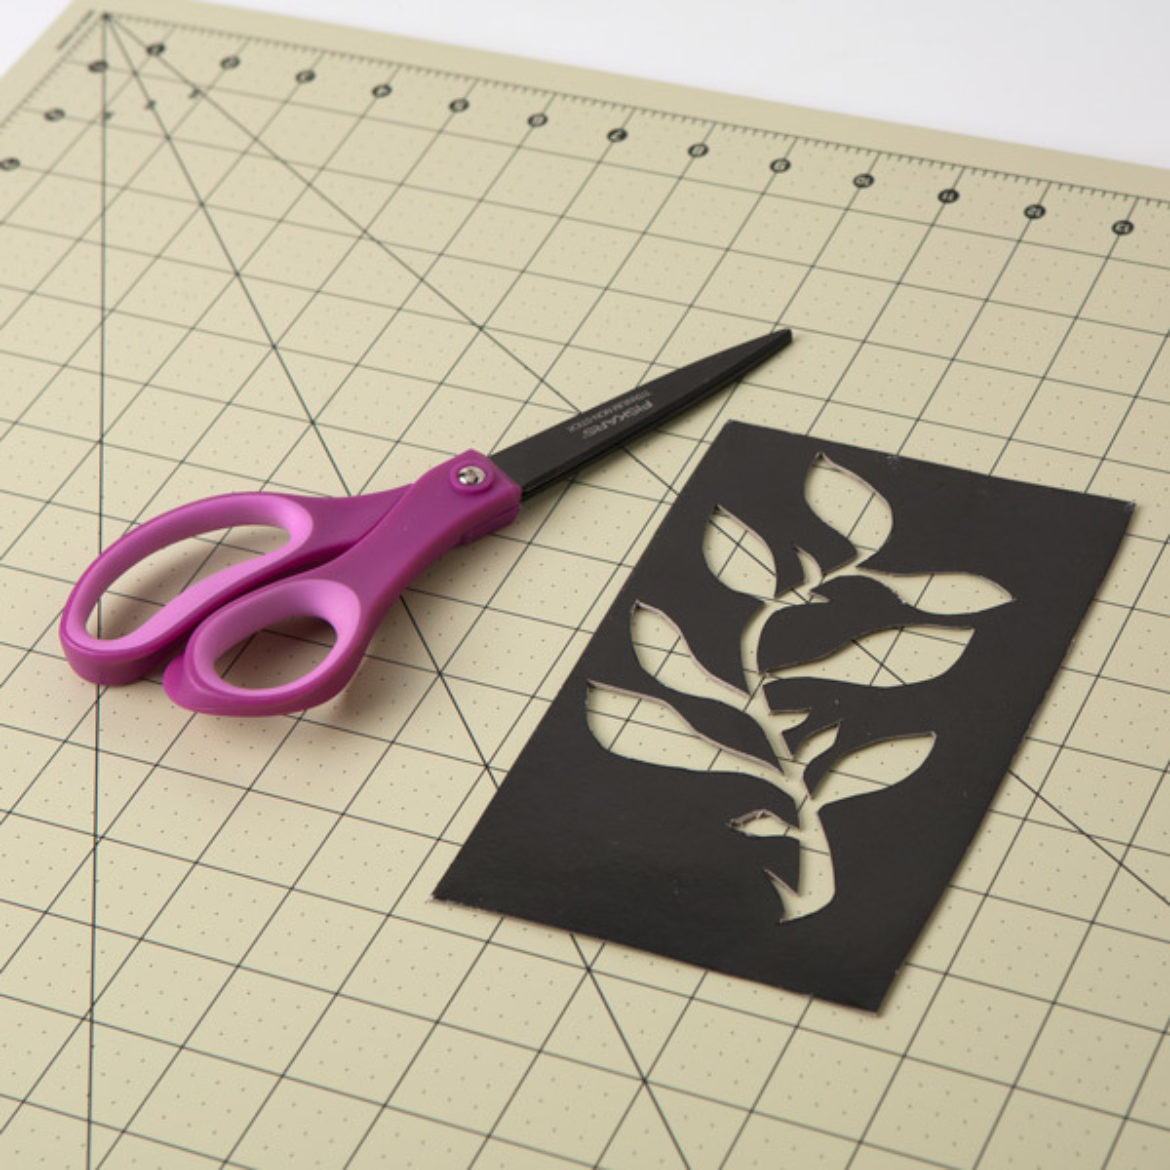 Floral design traced onto cardstock and cut out with scissors to serve as a template